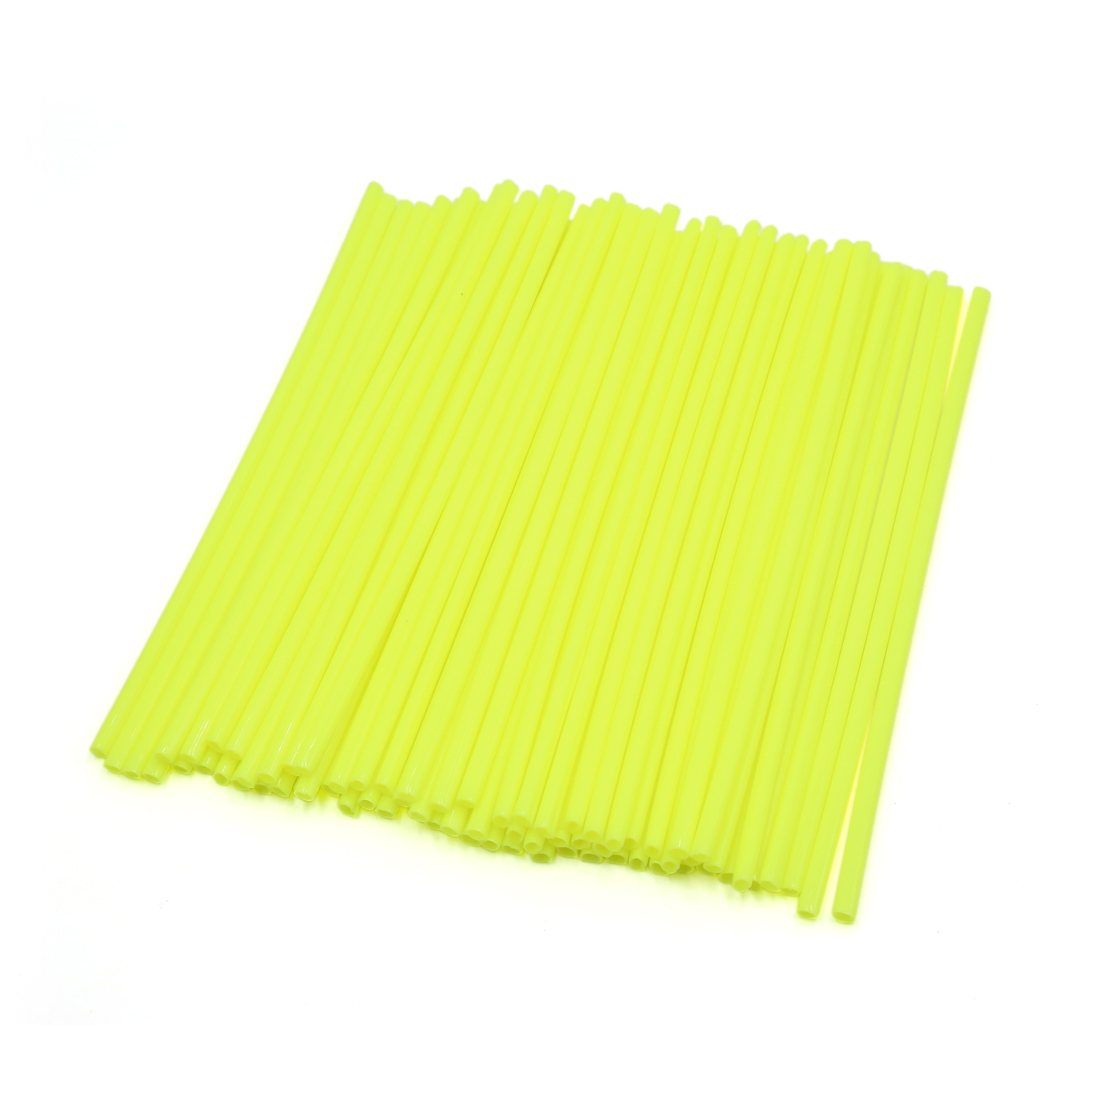 72Pcs Fluorescein Bicycle Bike Wheel Rim Spoke Tube Reflector Reflective Strips